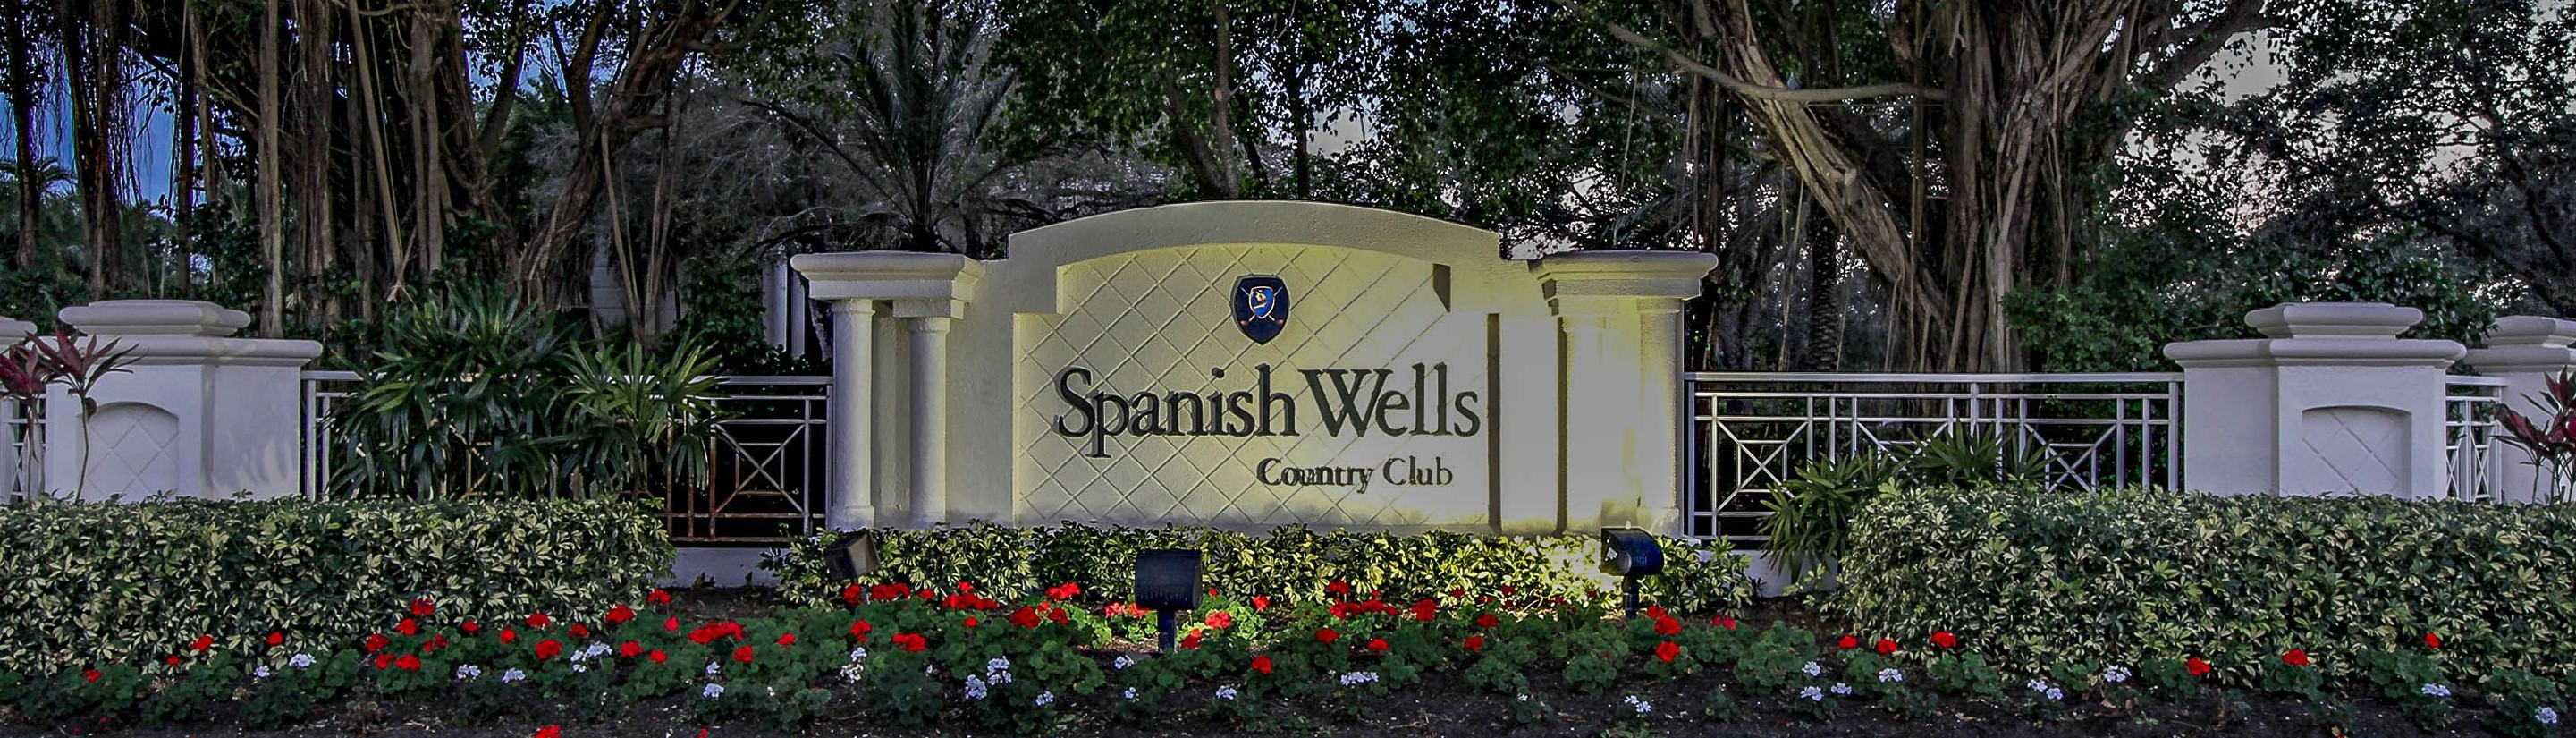 Spanish Wells Golf and Country Club homes for sale bonita springs real estate